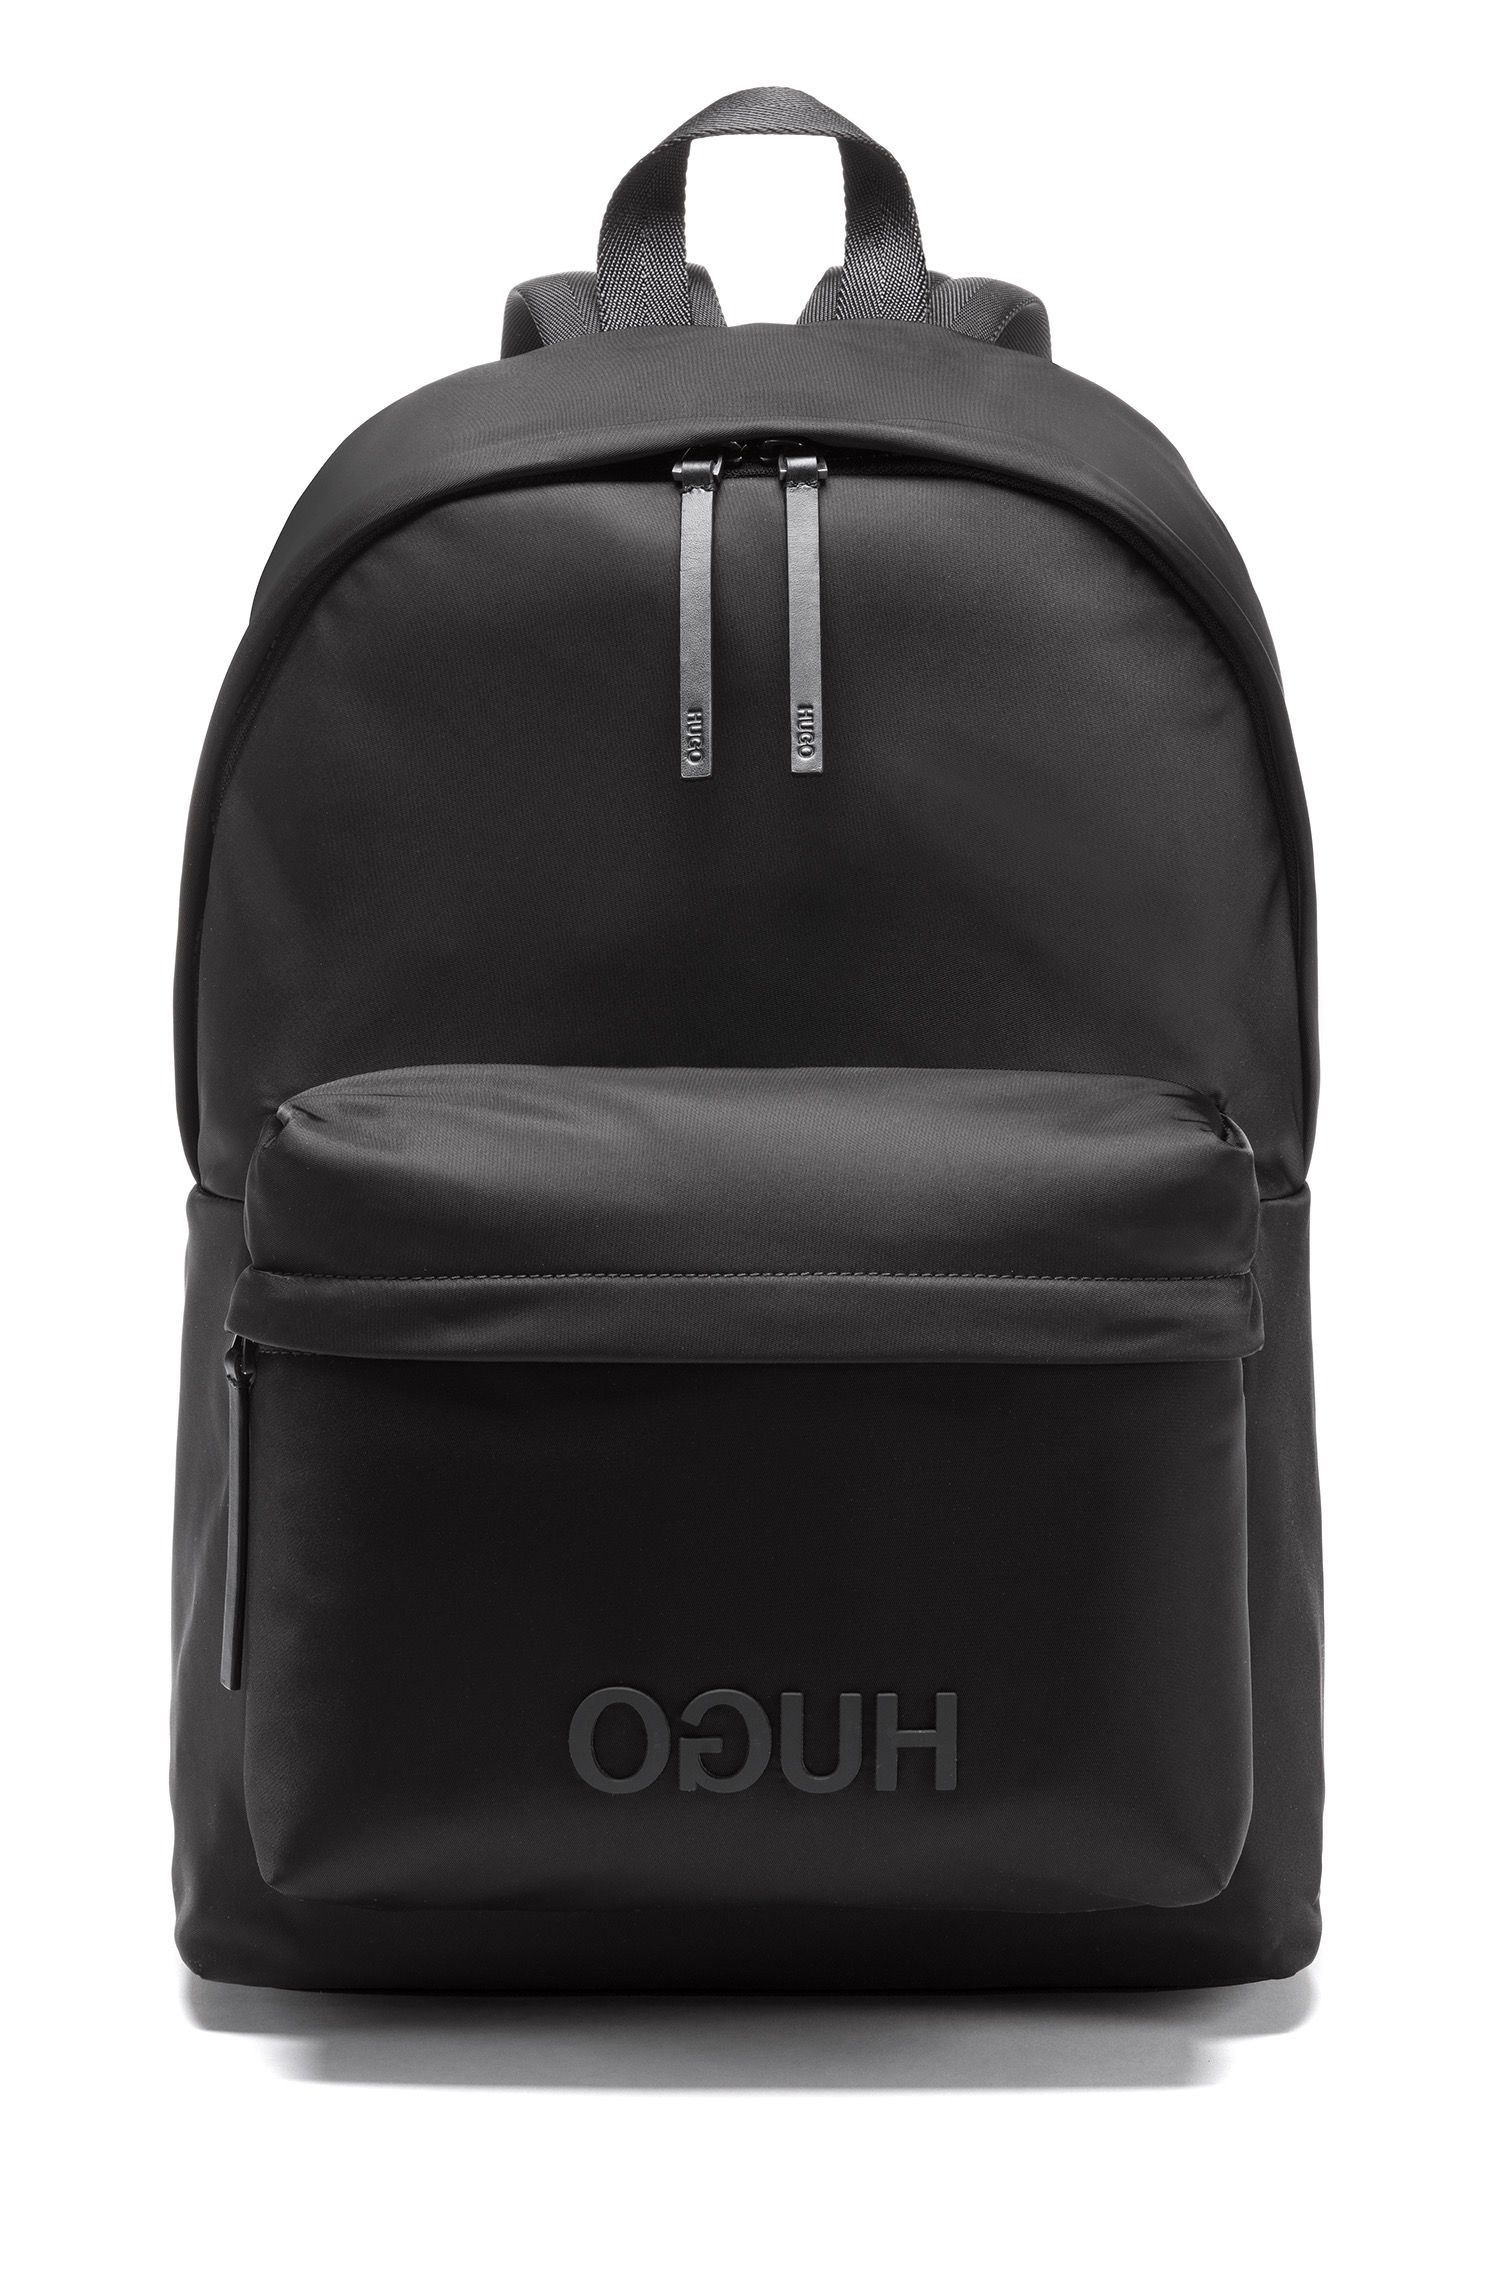 Reversed-logo backpack in nylon gabardine, Black